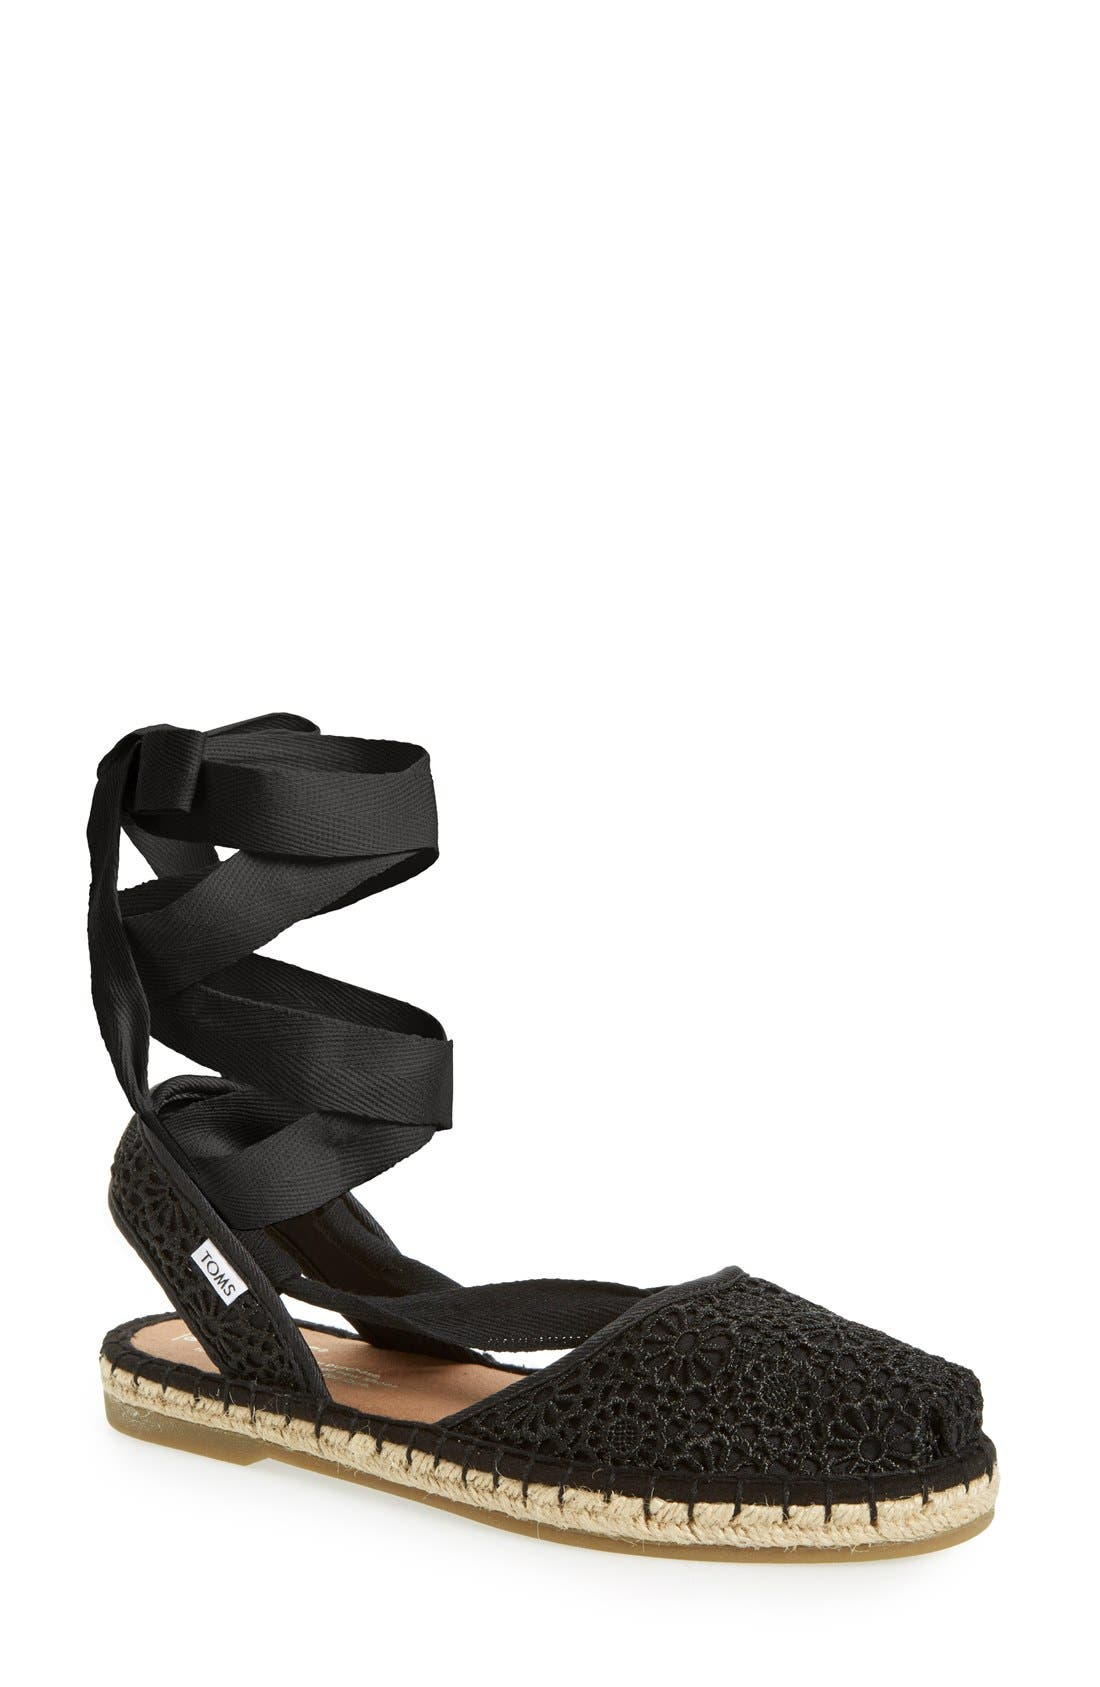 'Bella' Espadrille Sandal,                         Main,                         color, 001